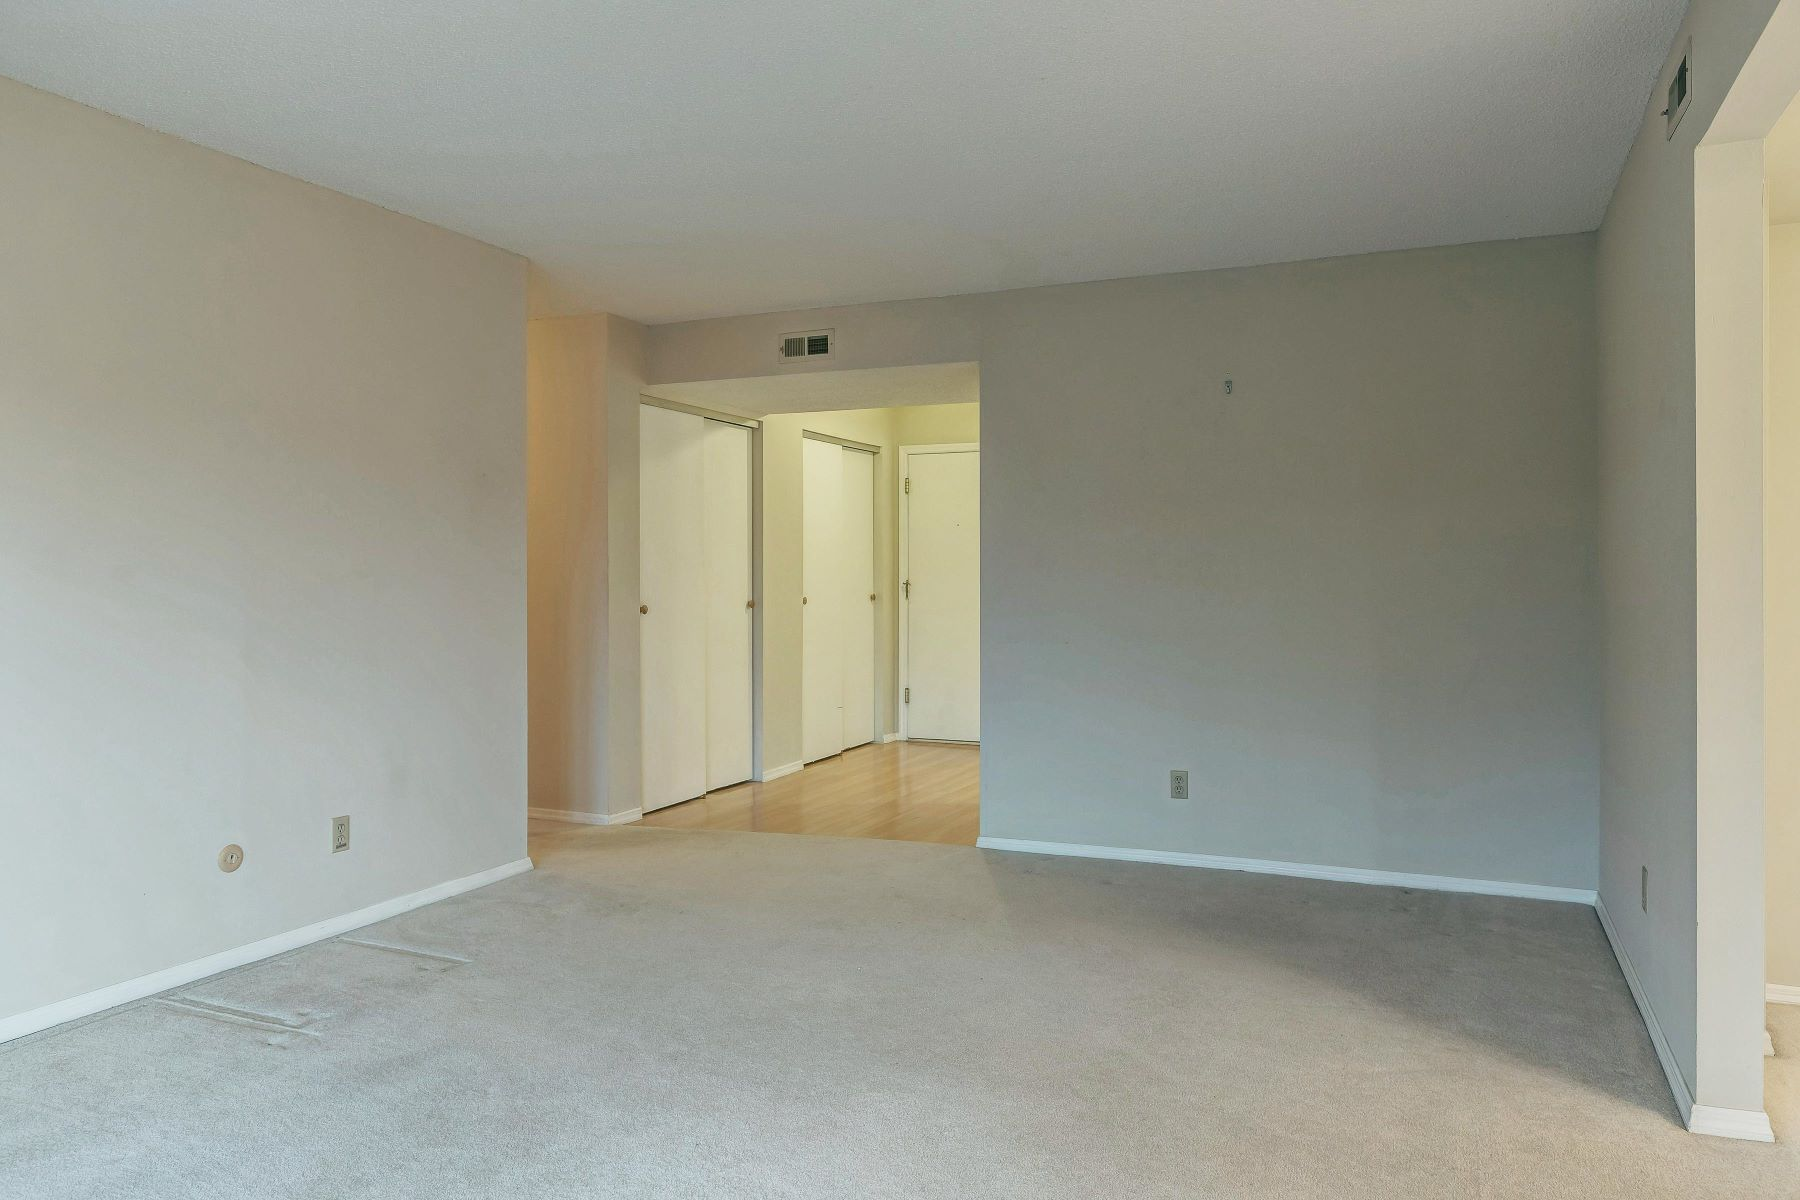 Additional photo for property listing at Lovely Creve Coeur Condo 564 Sarah Lane #205 Creve Coeur, Missouri 63141 United States